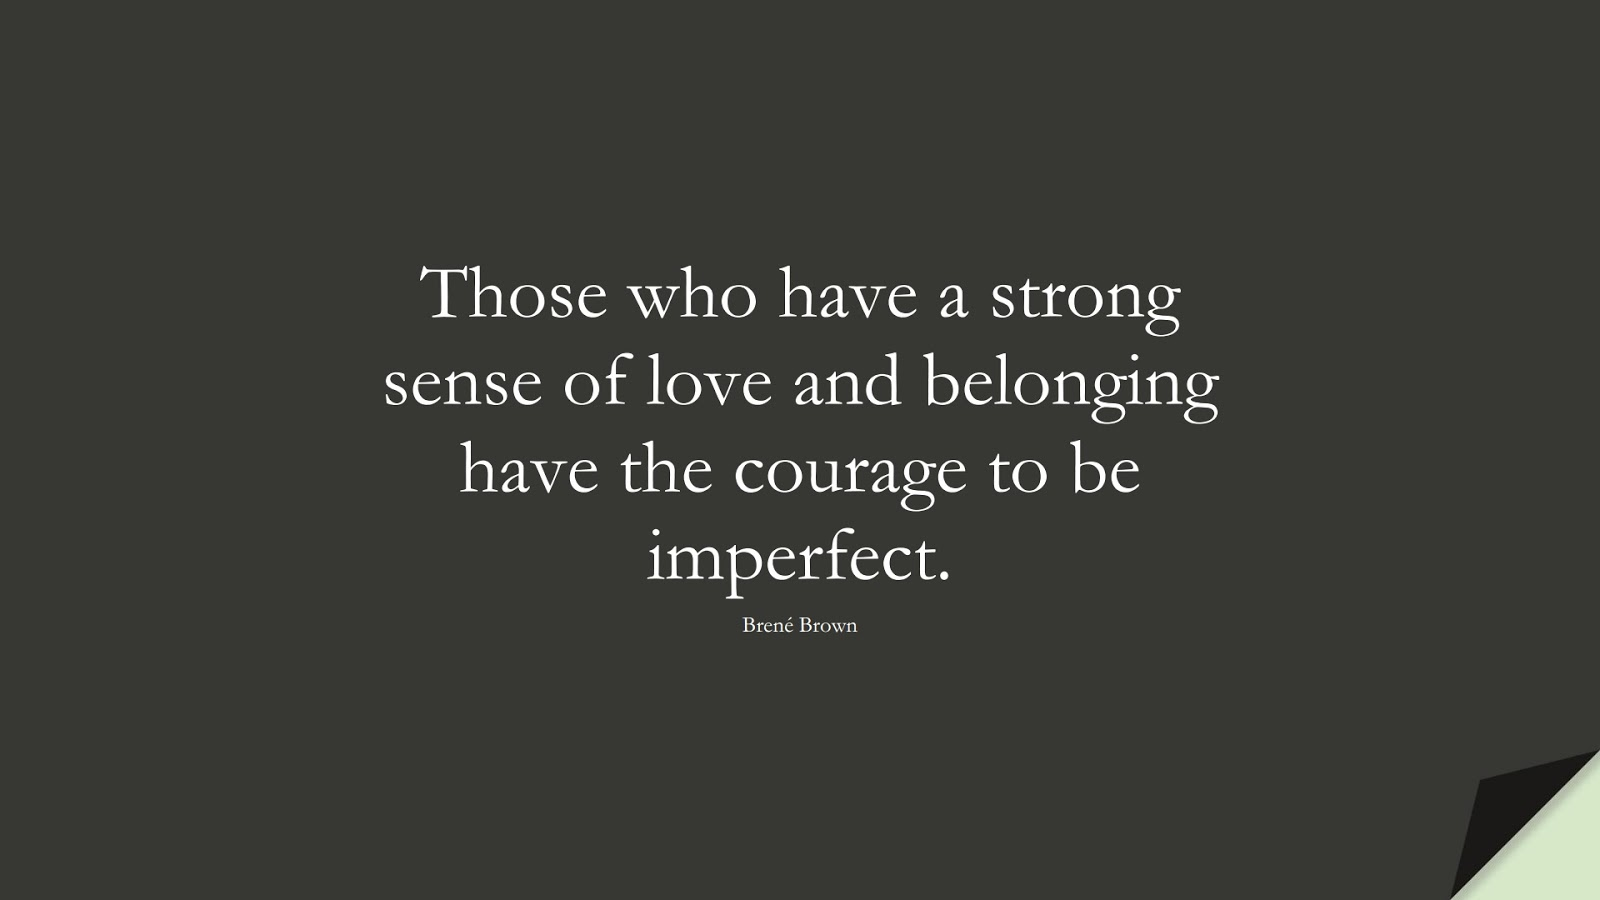 Those who have a strong sense of love and belonging have the courage to be imperfect. (Brené Brown);  #SelfEsteemQuotes